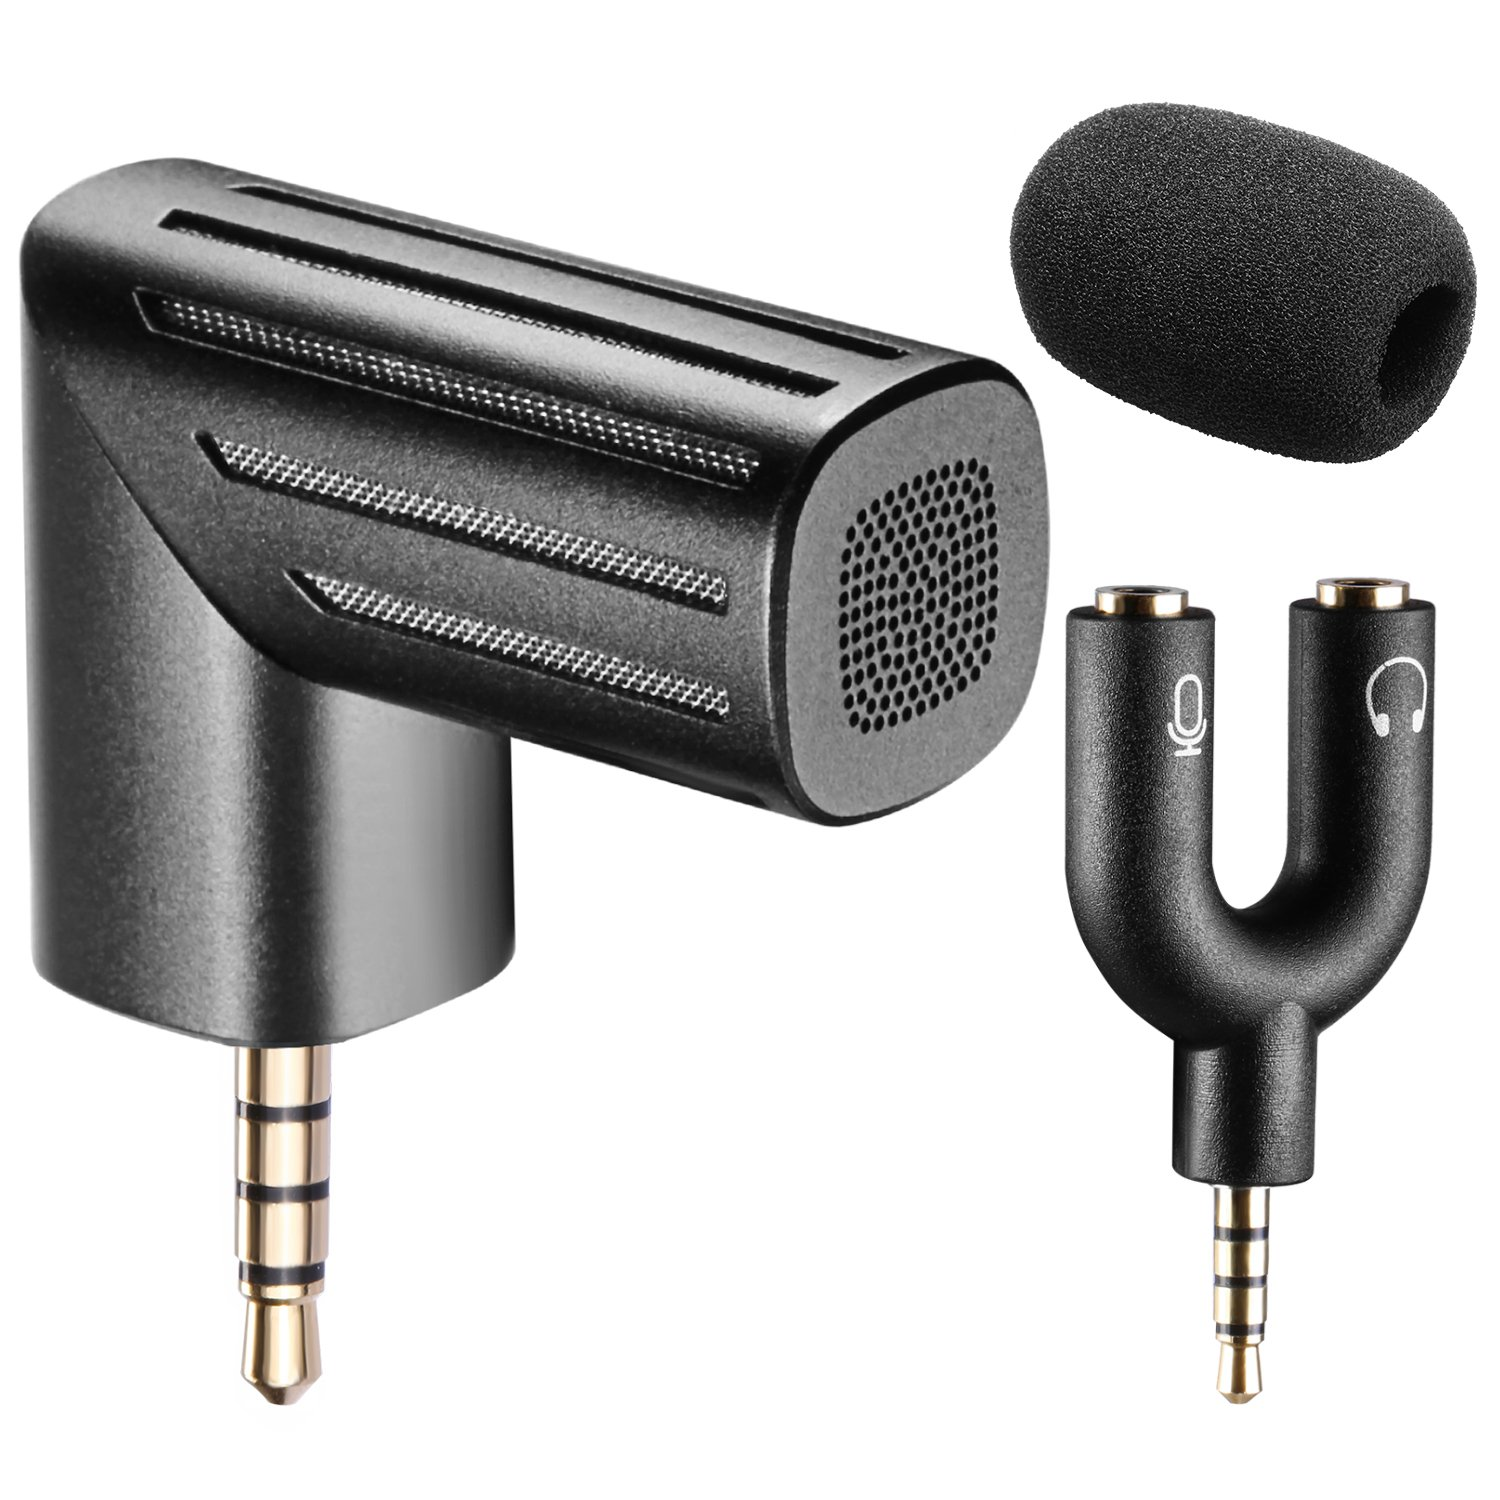 Neewer 90 Degree Rotational Microphone with U Shape 3.5MM Mic & Headset Y Splitter and Microphone Windscreen for iPhone/iPad and Android Smart Phones, Black